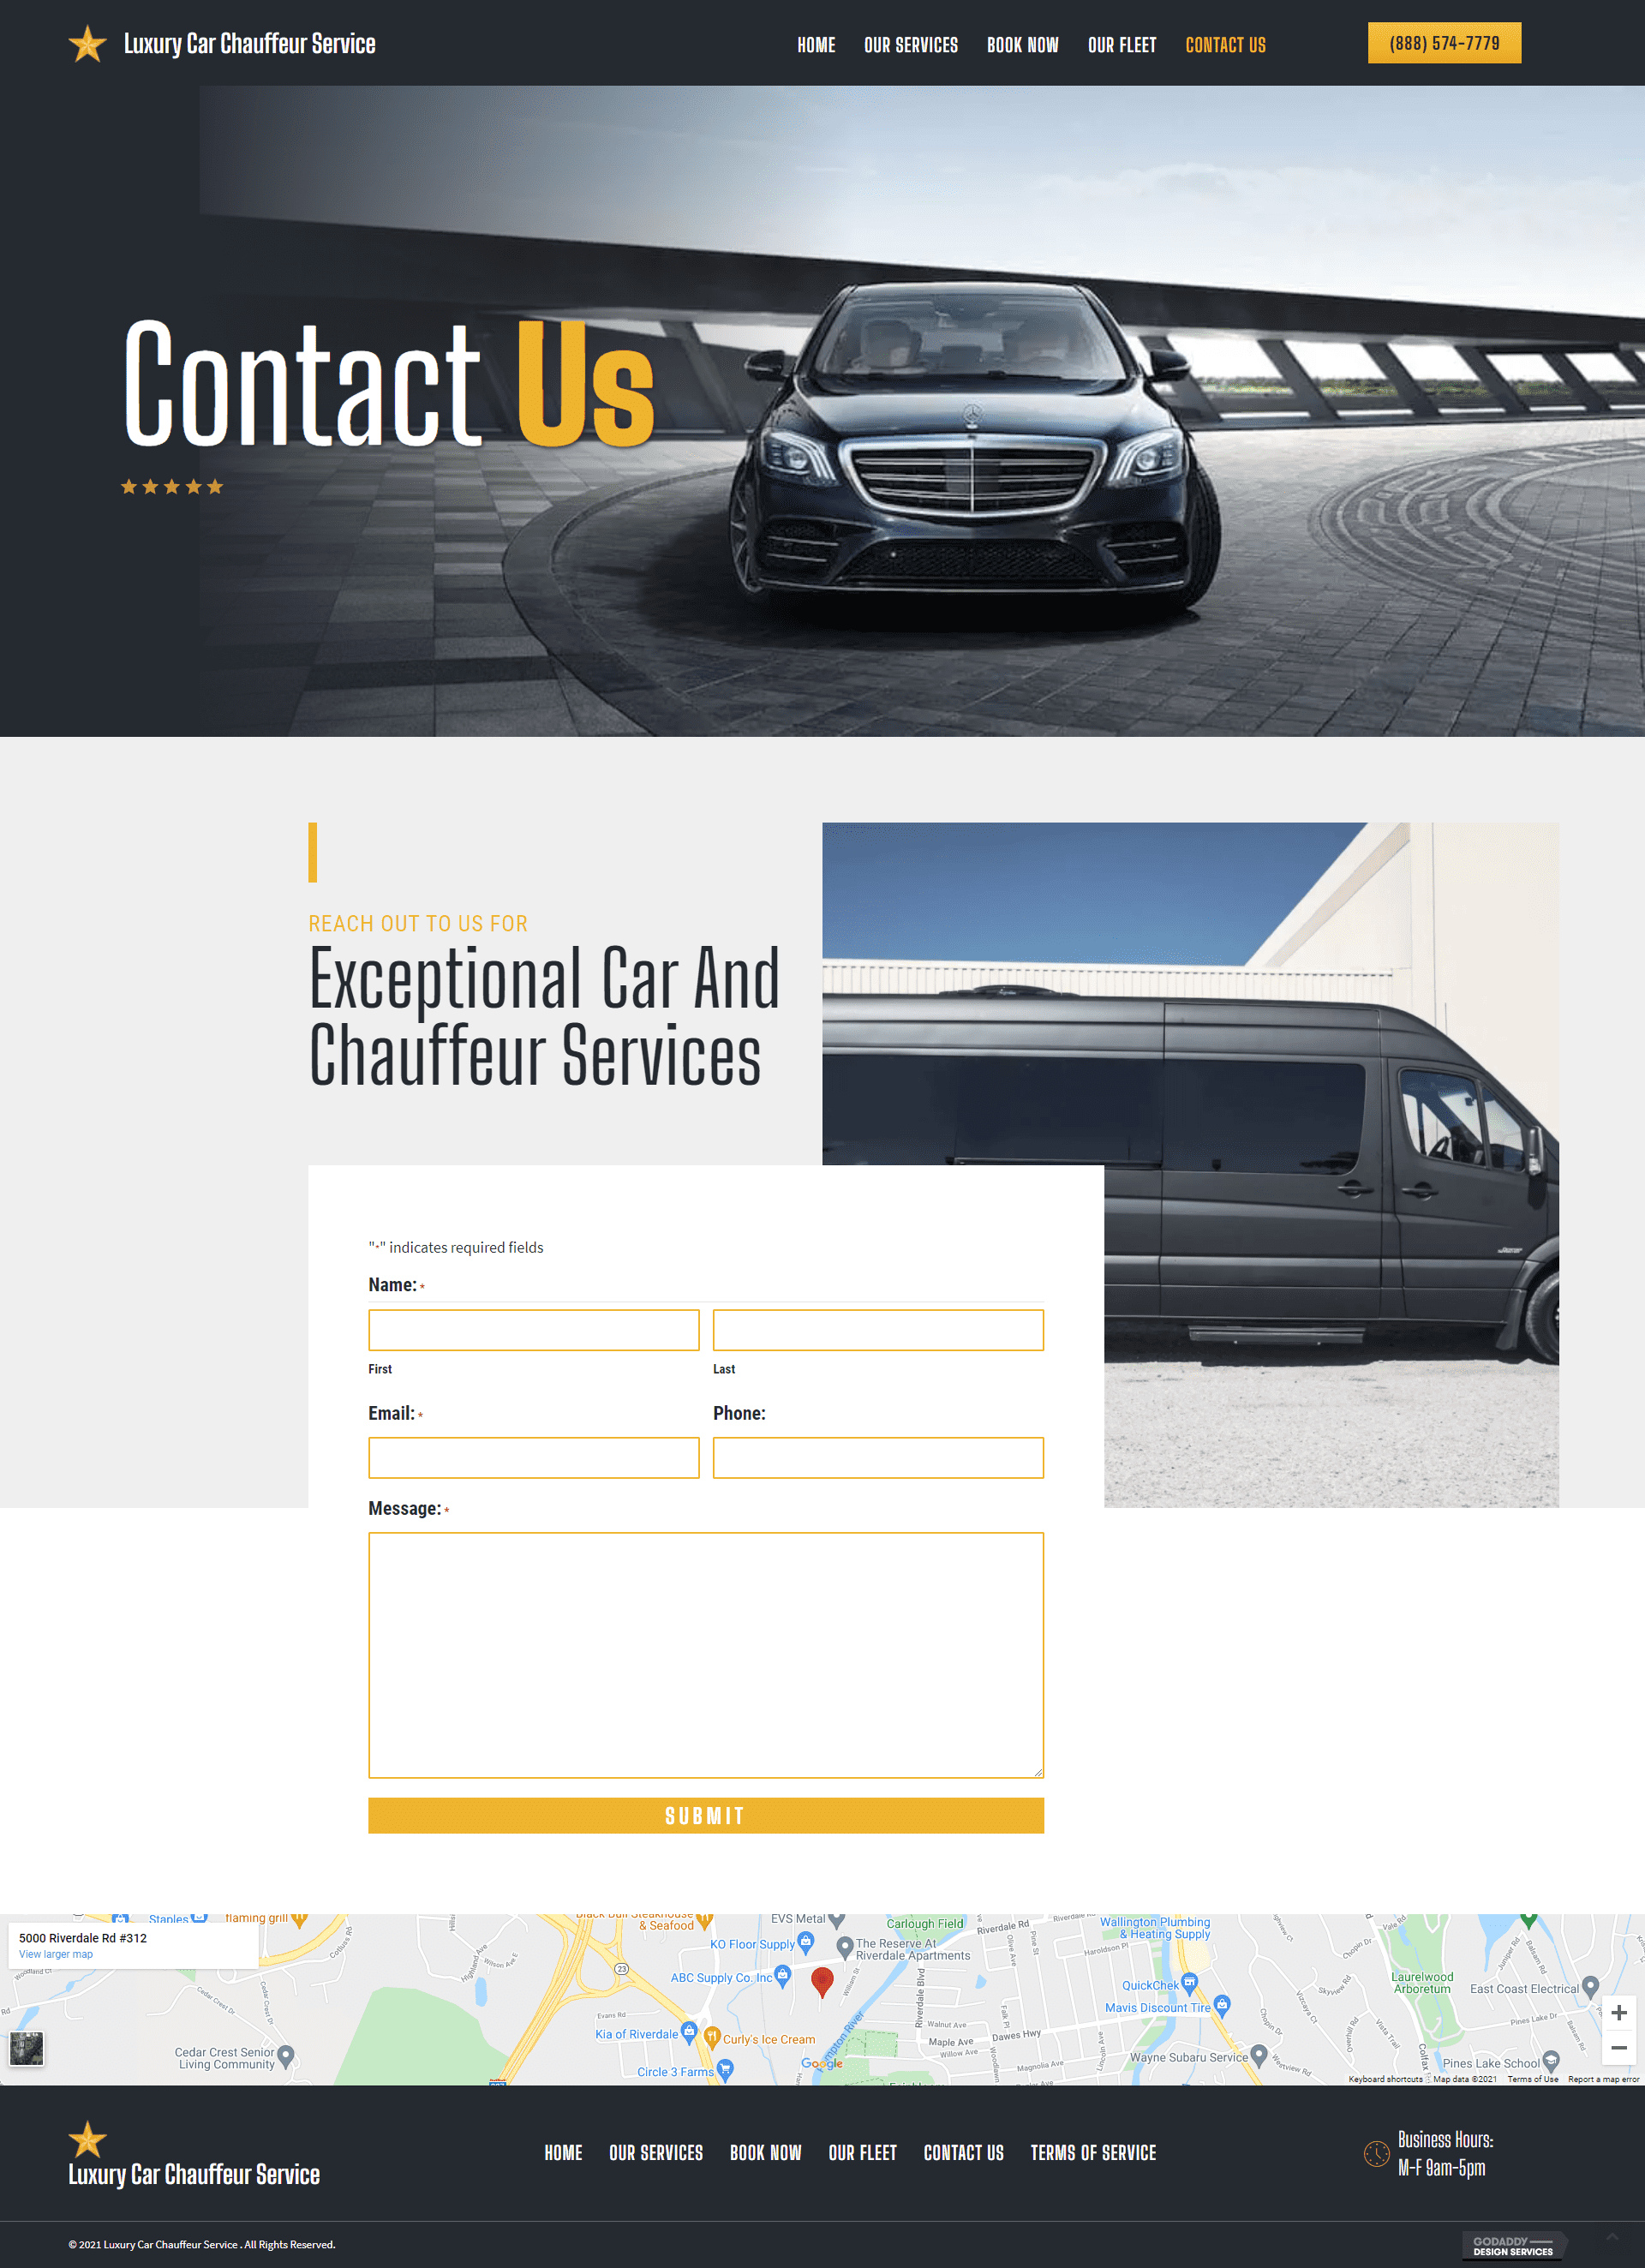 Luxury Car Chauffeur Service Contact